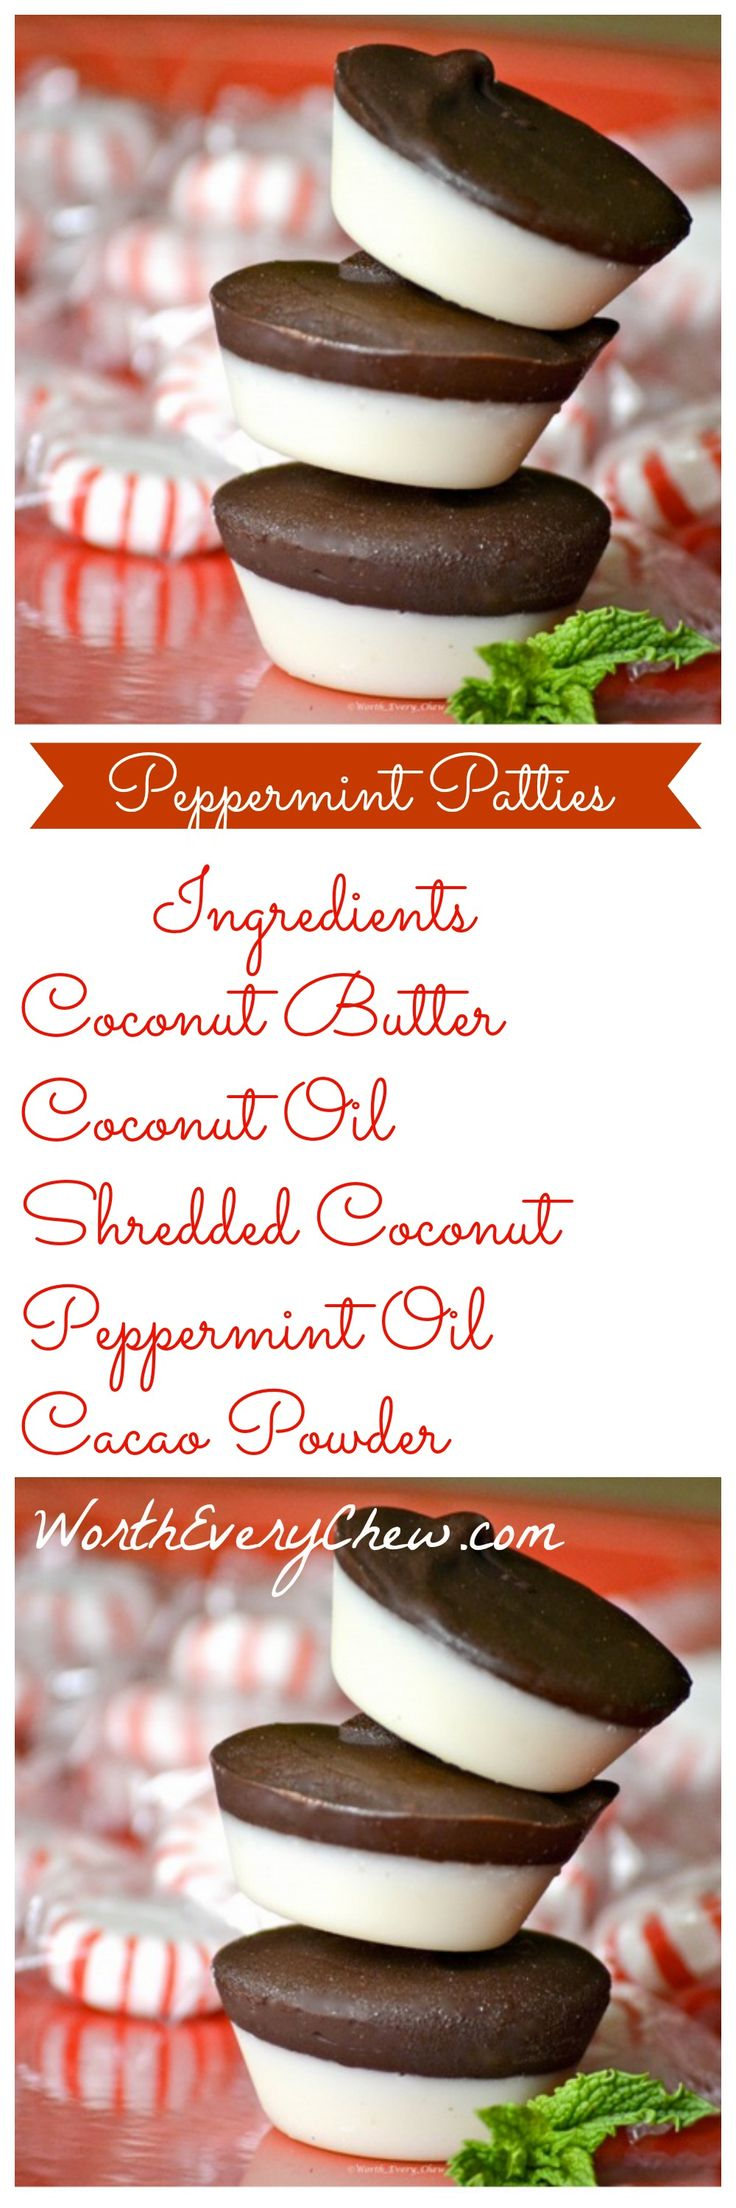 Paleo/Keto Peppermint Patties - These make the perfect fat bomb and a great low carb high fat answer to your sweet tooth. A crisp, sweet satisfying recipe that is Worth Every Chew !